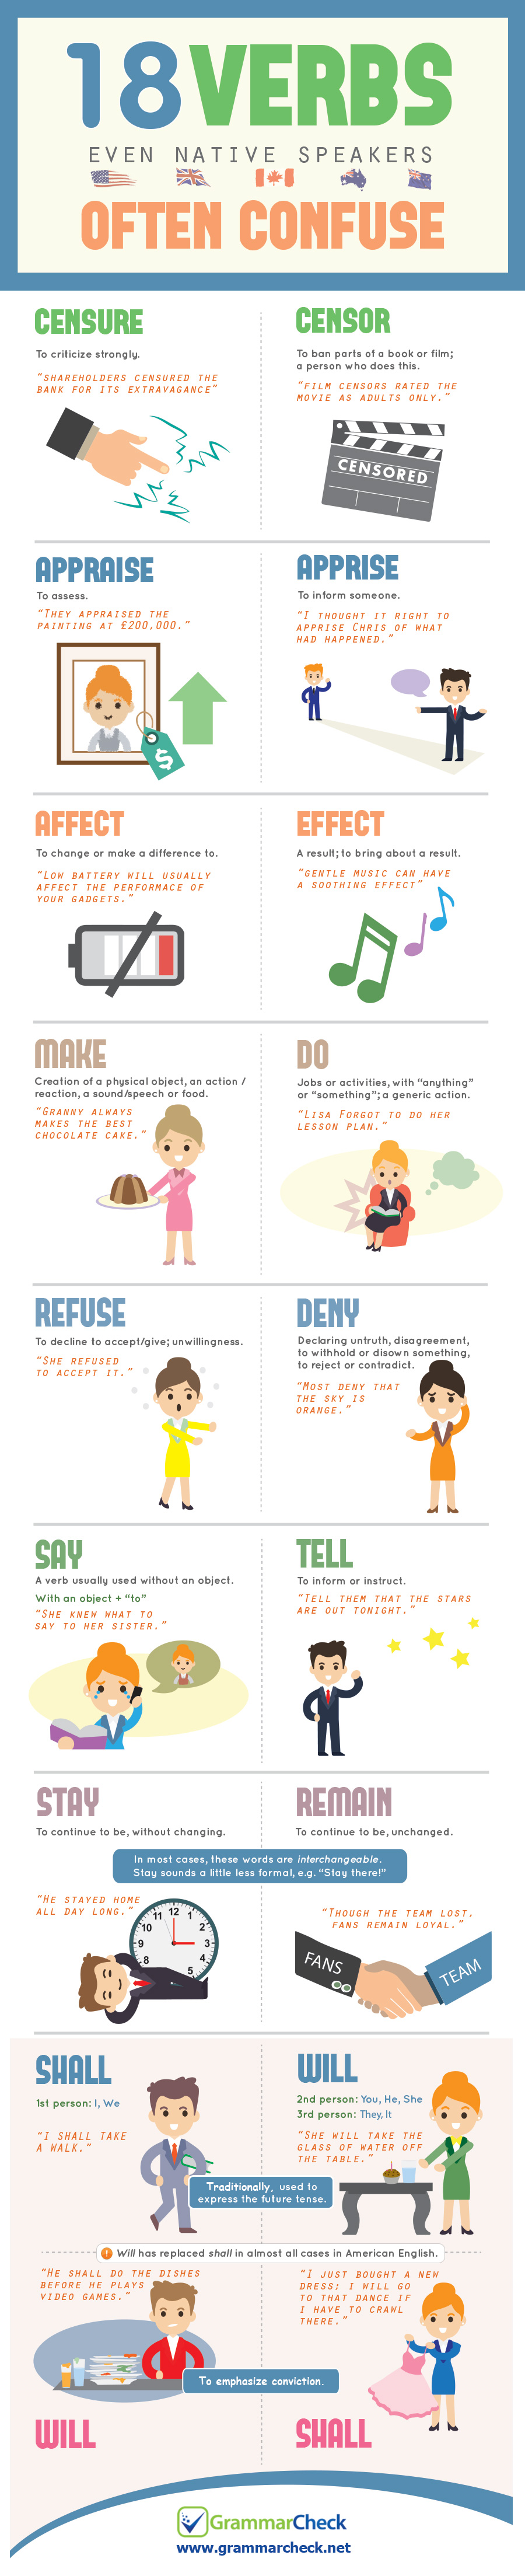 18 English Verbs that Puzzle Even Native Speakers - Infographic